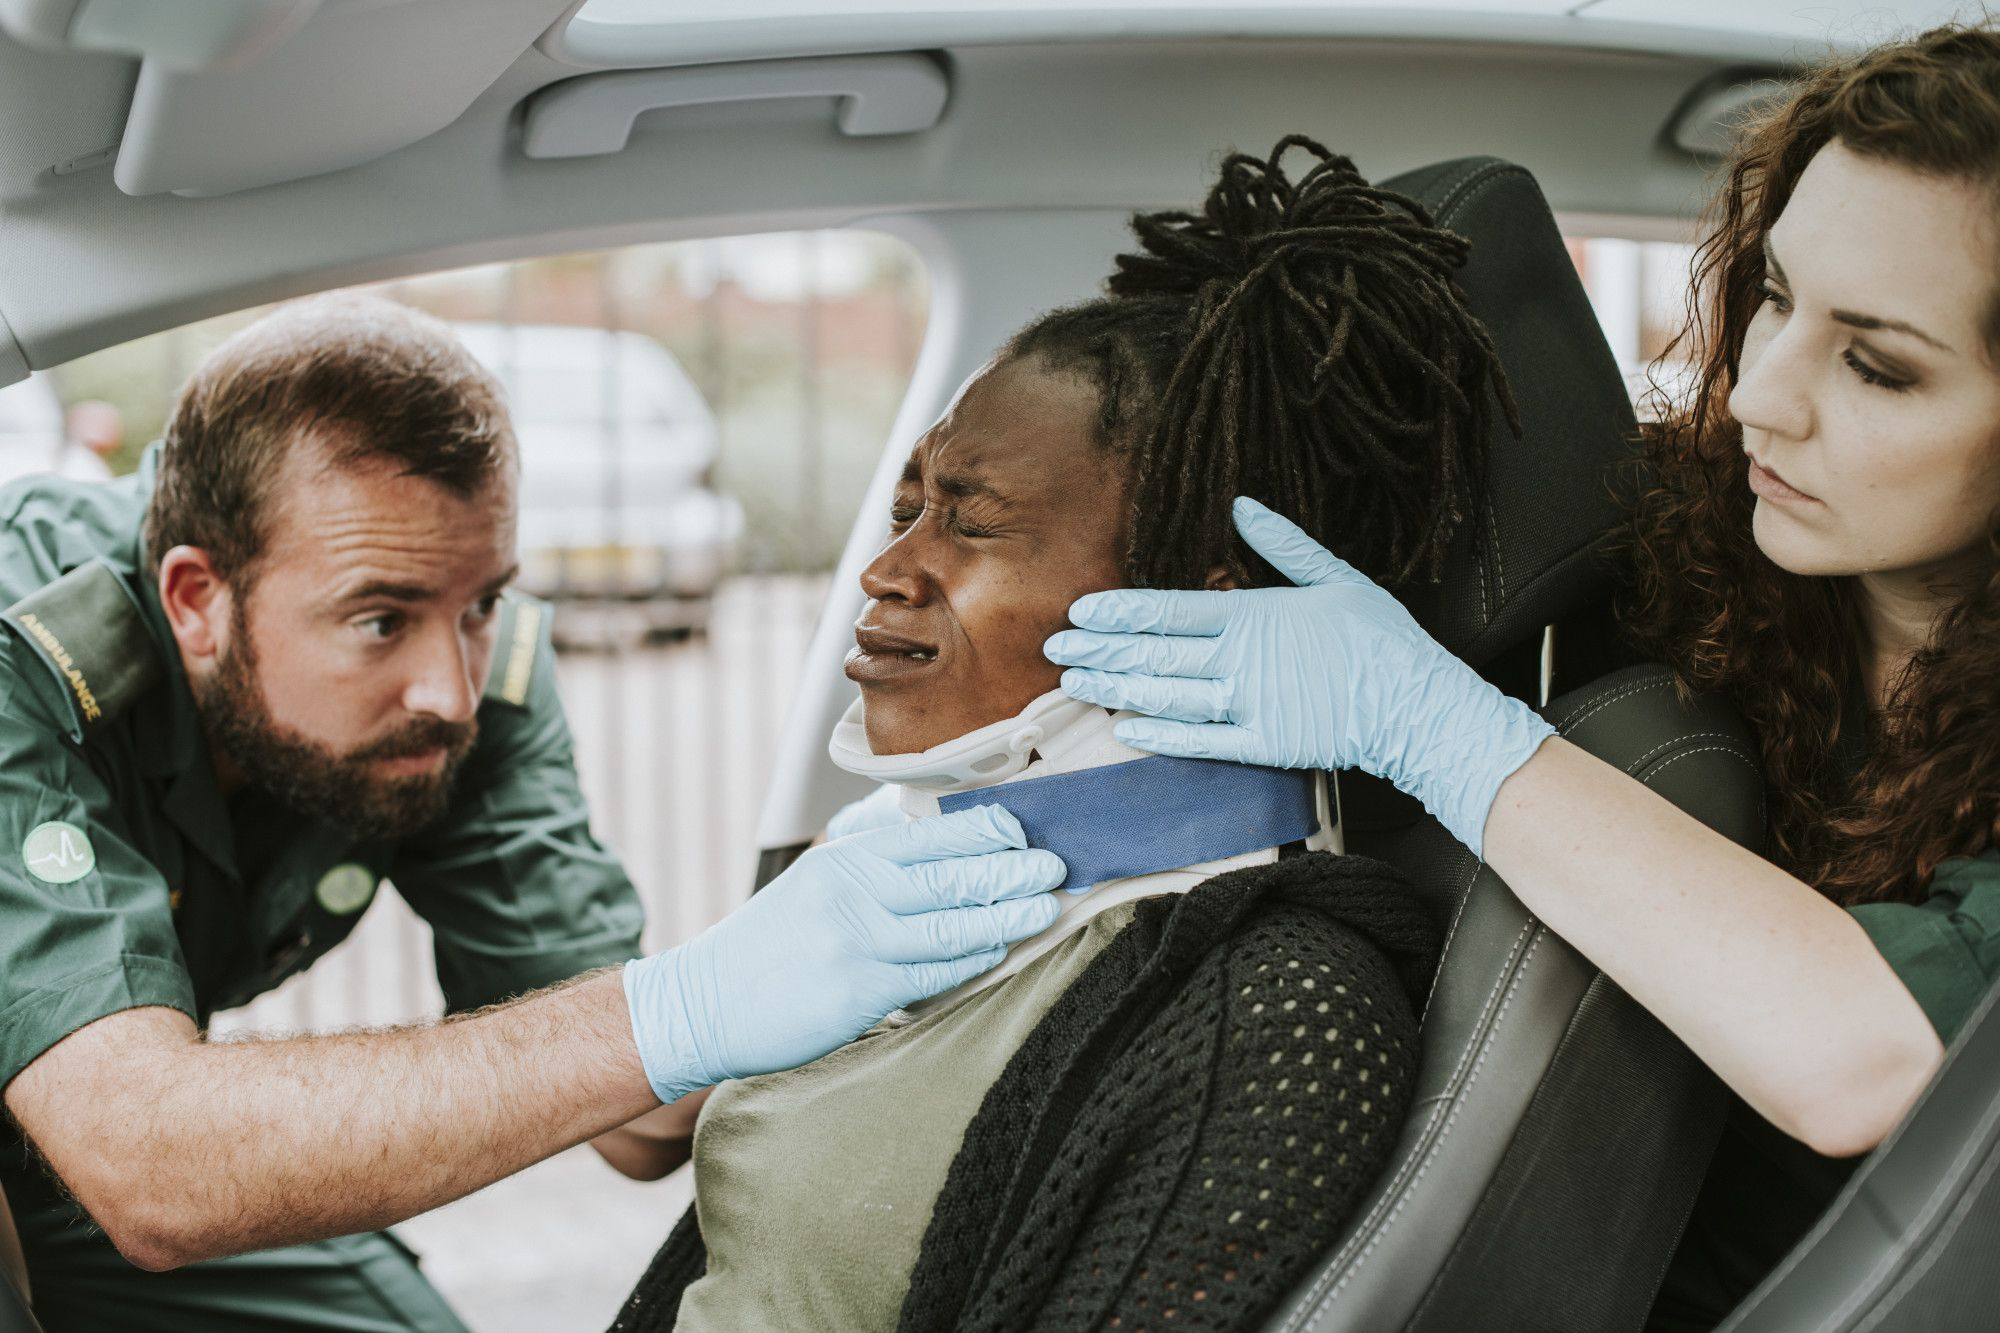 The Most Common Car Accident Injuries That Go Undiagnosed